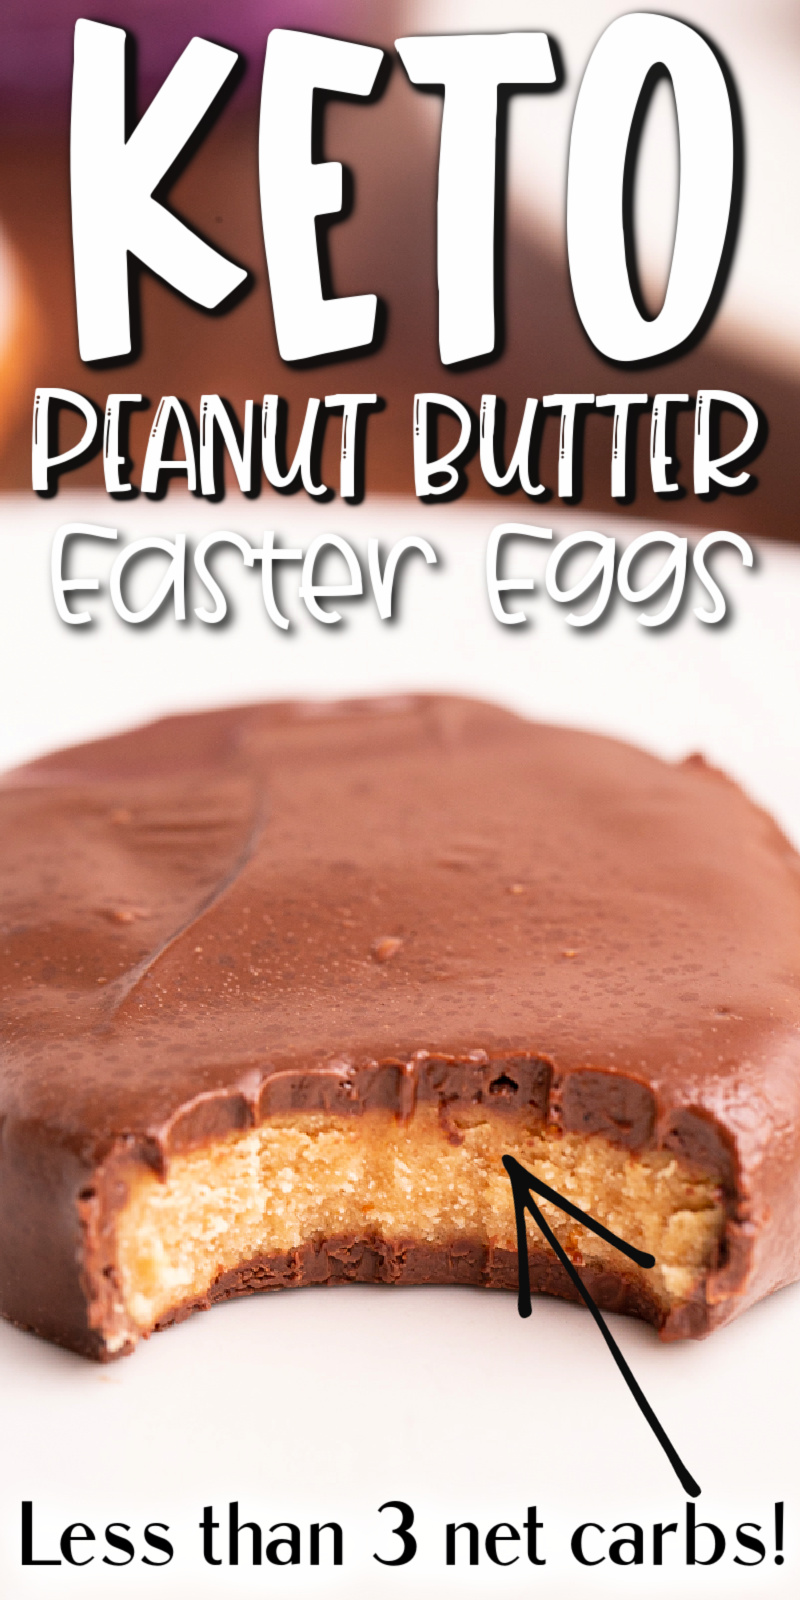 Keto Peanut Butter Chocolate Easter Eggs - This Keto Peanut Butter Chocolate Easter Eggs recipe is the perfect low carb and gluten-free Easter treat. Sweet creamy peanut butter on the inside with that delicious chocolate coating, who needs Reeses when you have these? #keto #lowcarb #glutenfree #sugarfree #resses #peanutbutter #chocolate #easter #eggs #recipe